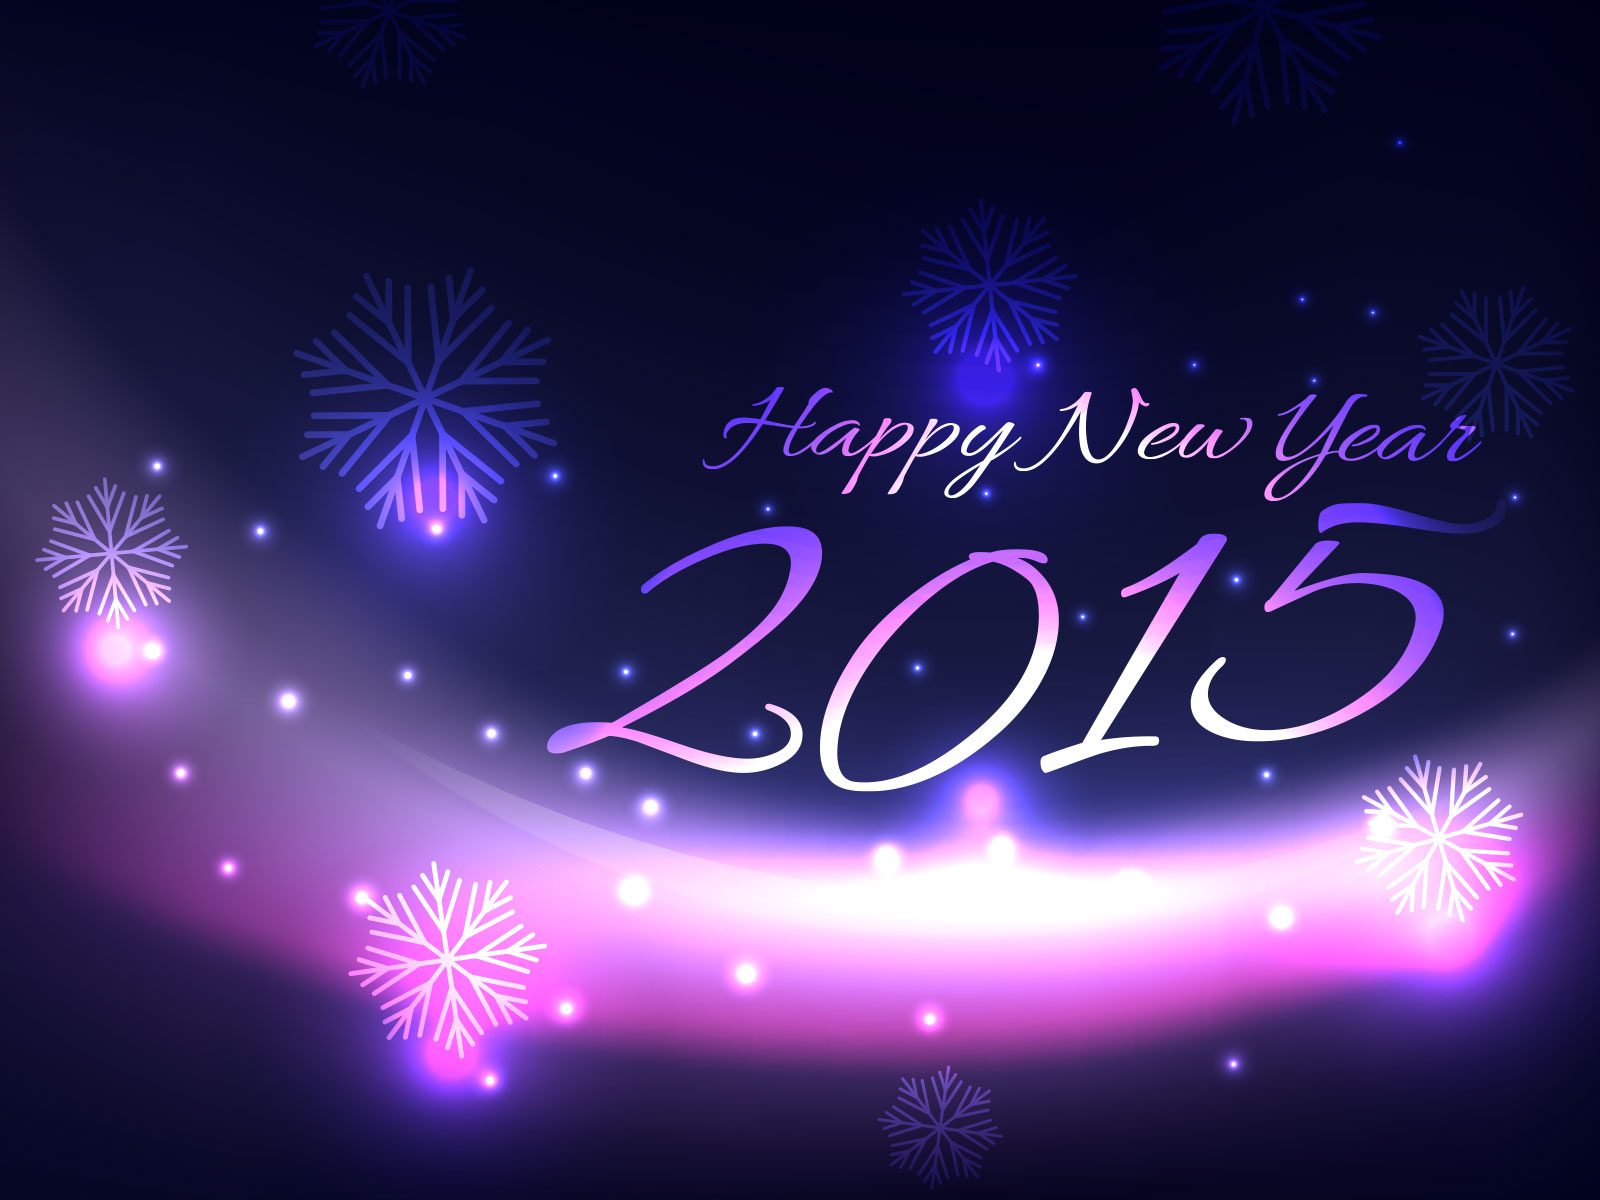 Happy New Year 2015 Wallpapers, Images & Facebook Cover photos